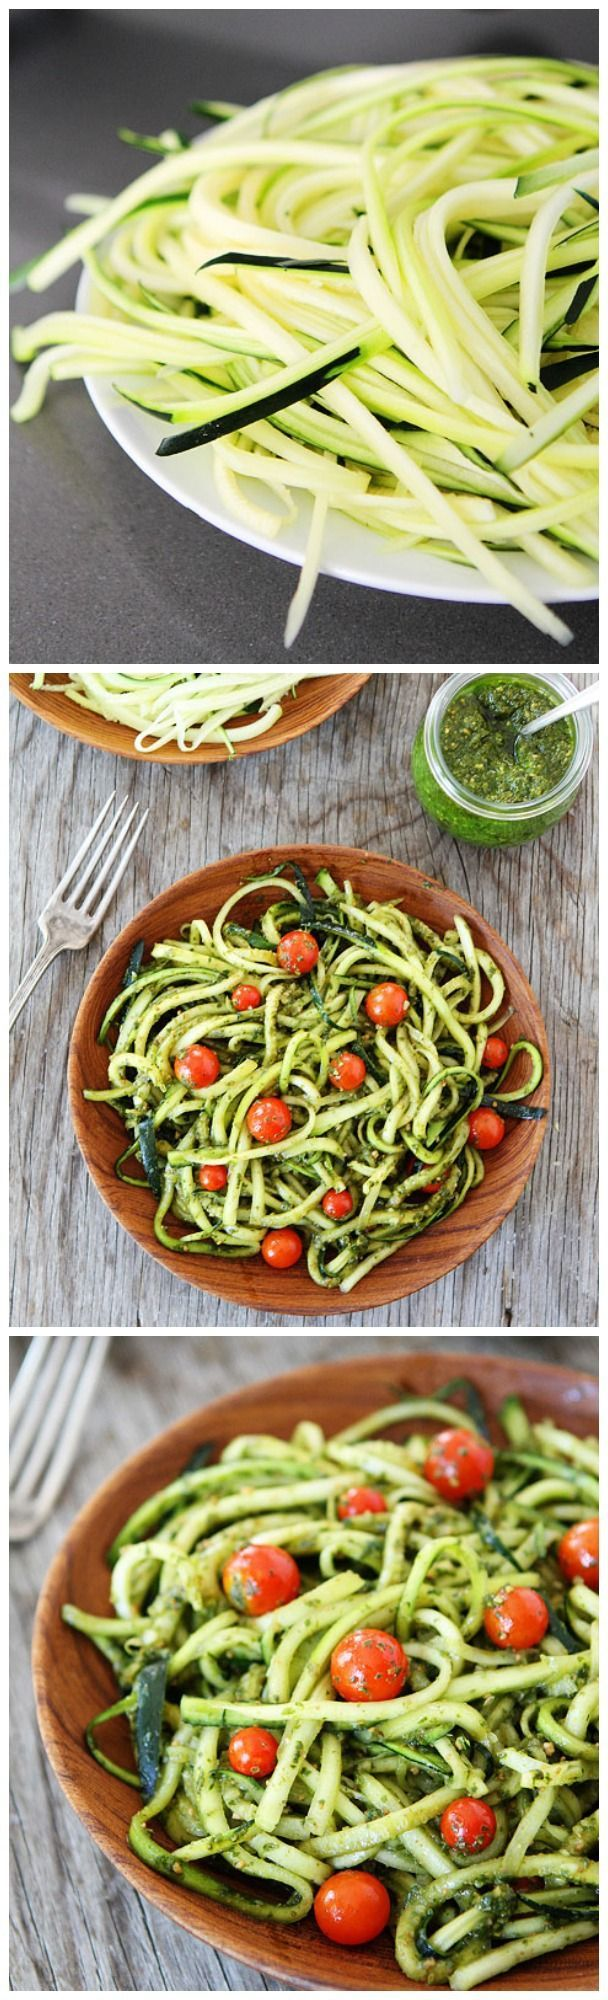 Zucchini Noodles with Pesto ...... Turn abundant zucchini into noodles for a fun summer meal. Zucchini Noodles with Pesto is a simple and healthy dish that the entire family will love!....... Quick, healthy and yum! the Daniel plan